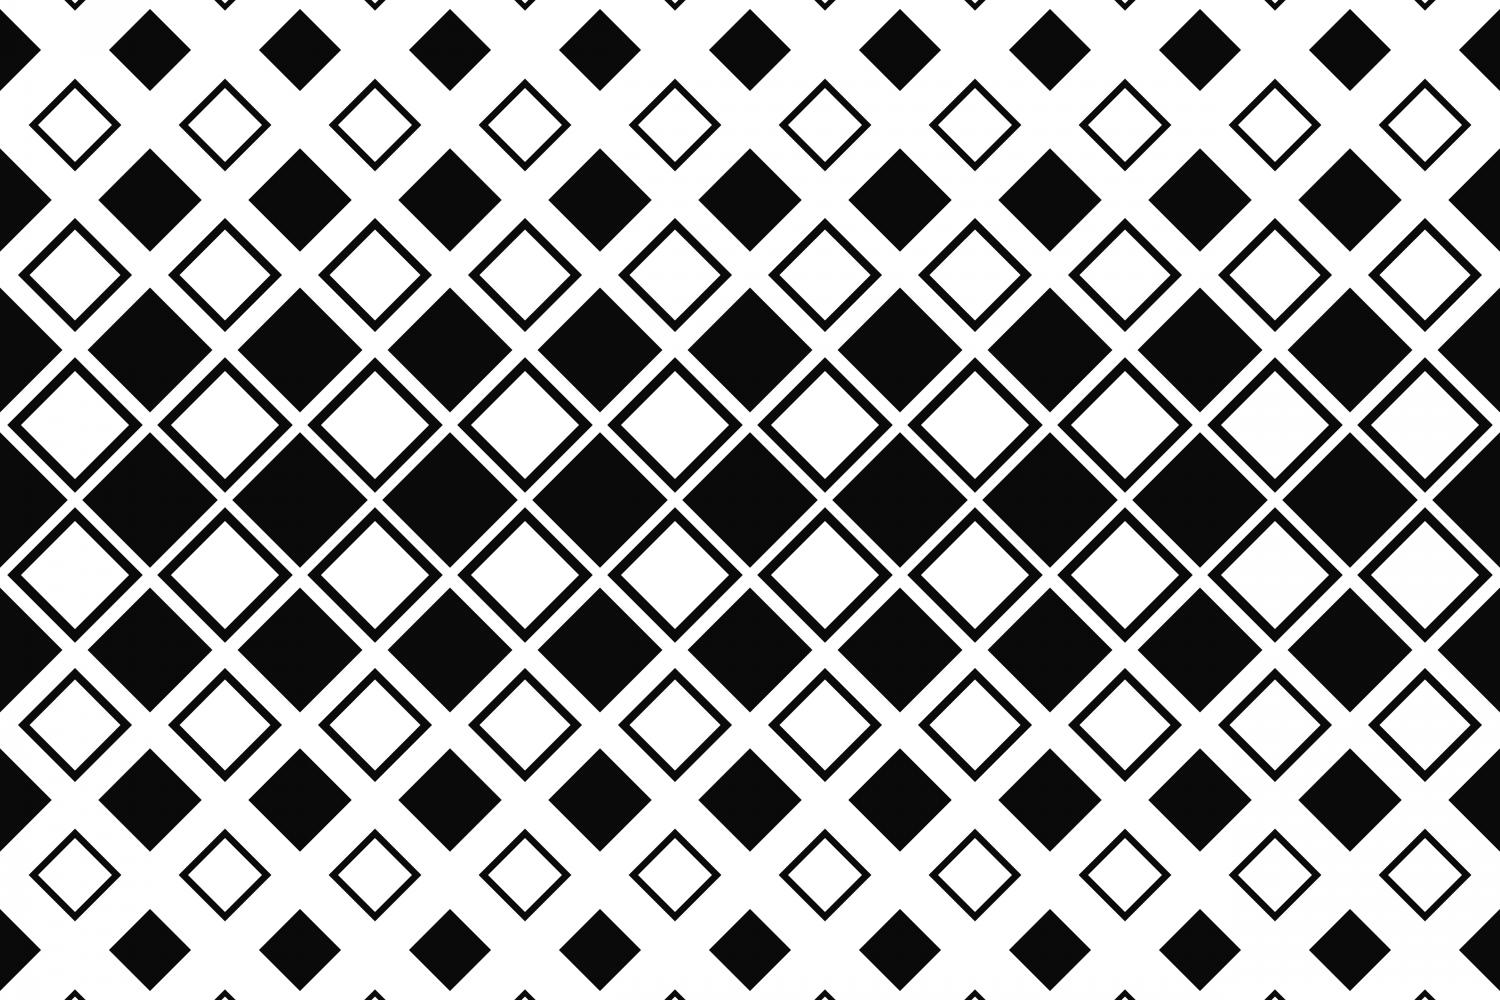 Download Free Monochrome Square Pattern Graphic By Davidzydd Creative Fabrica for Cricut Explore, Silhouette and other cutting machines.